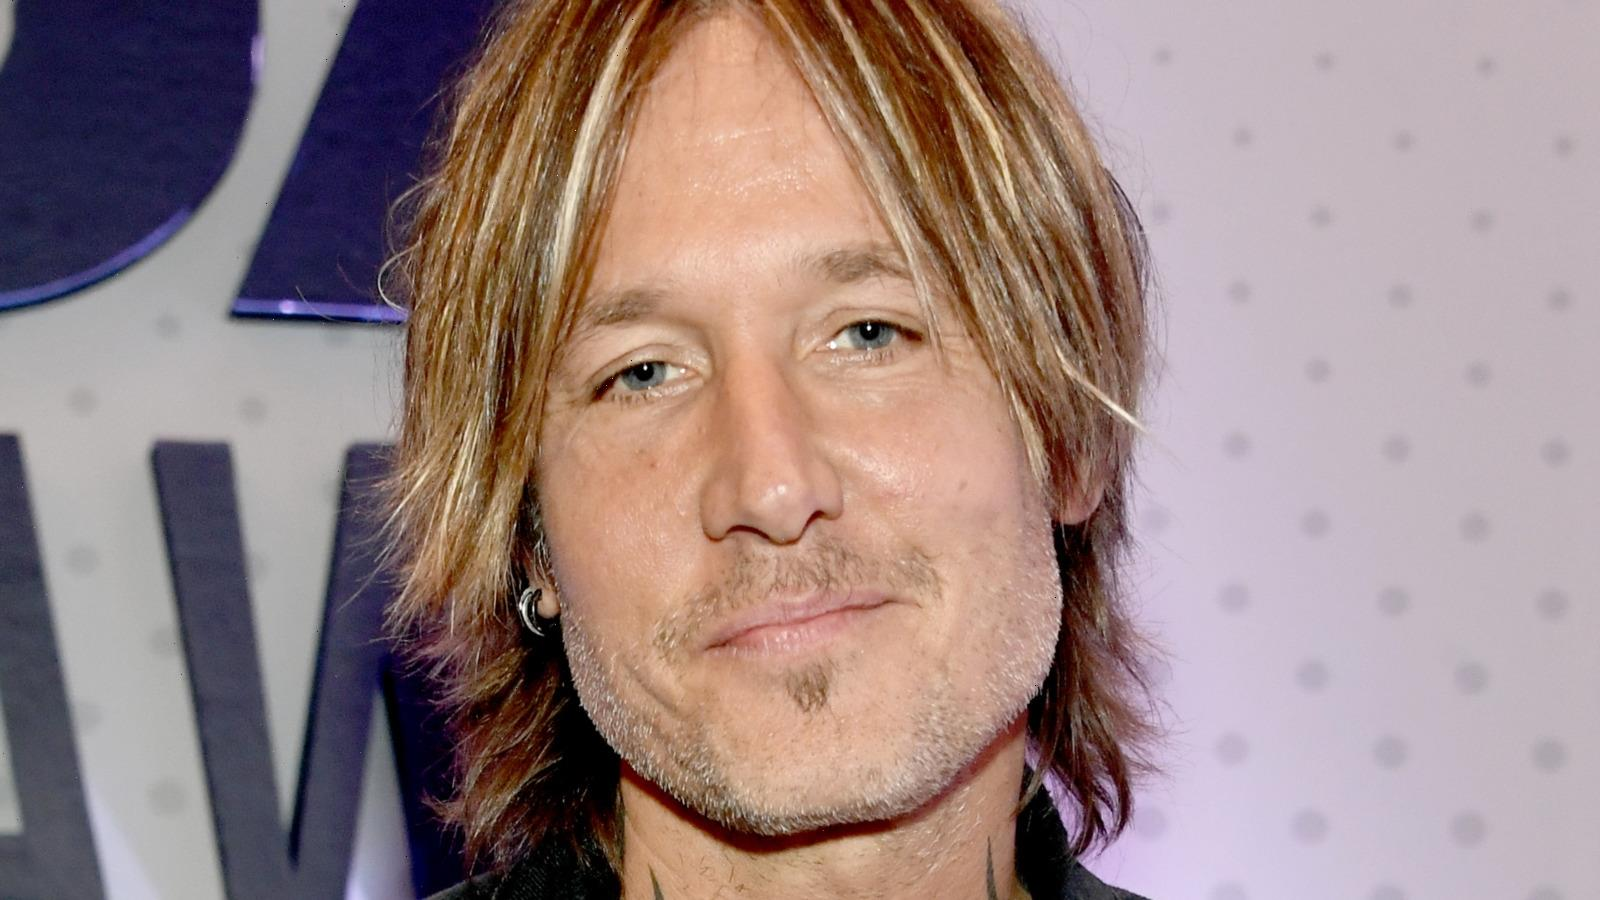 The Real Meaning Behind 'One Too Many' By Keith Urban